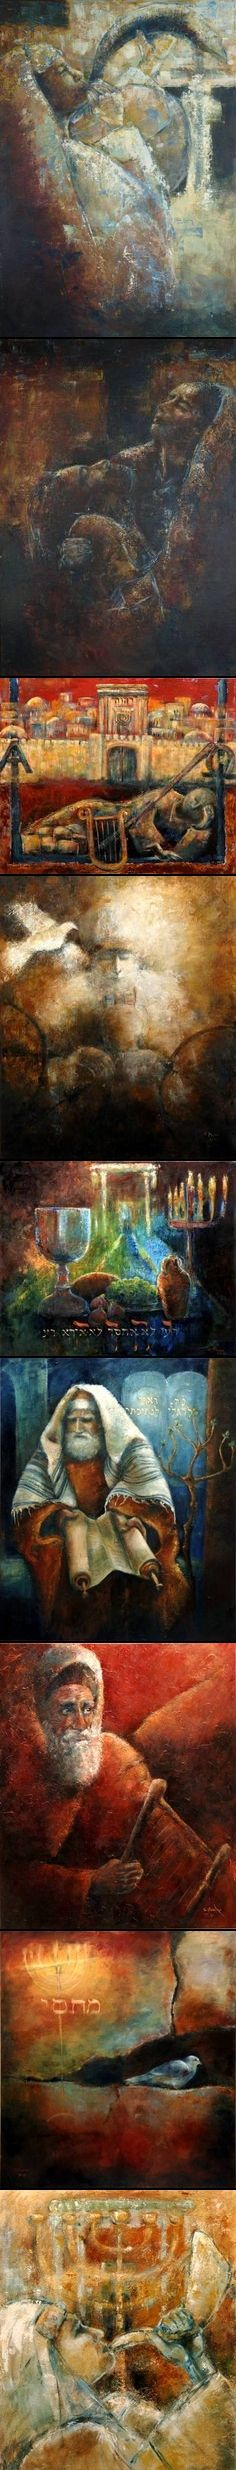 ARTIST Christa Rosier - she is with the Lord now. But we still get to enjoy these gorgeous paintings.